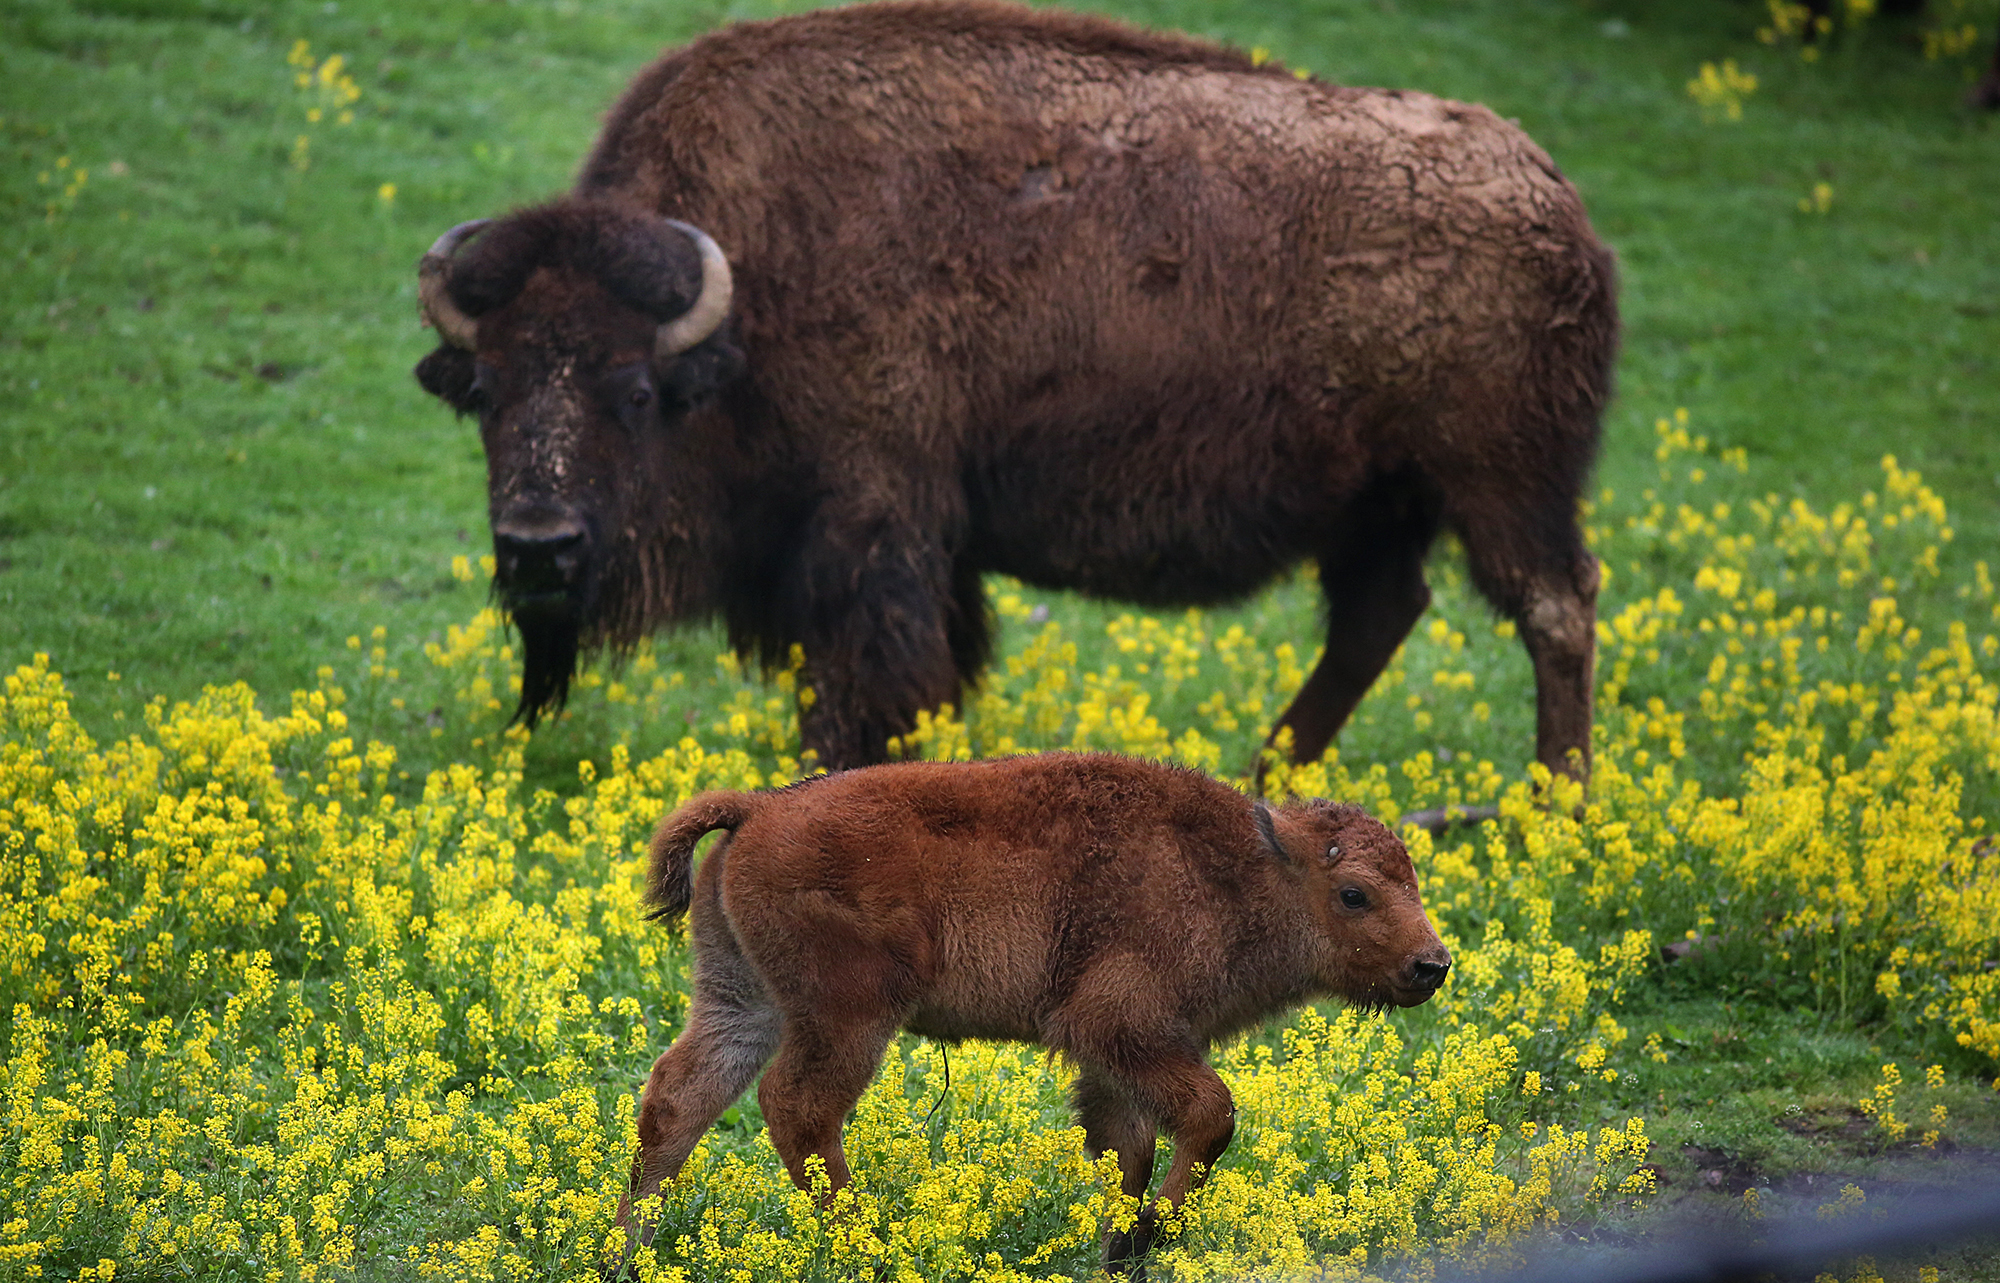 A male bison was born in 2016 at the Minnesota Zoo, which works with the state DNR to expand the Minnesota Bison Conservation Herd.